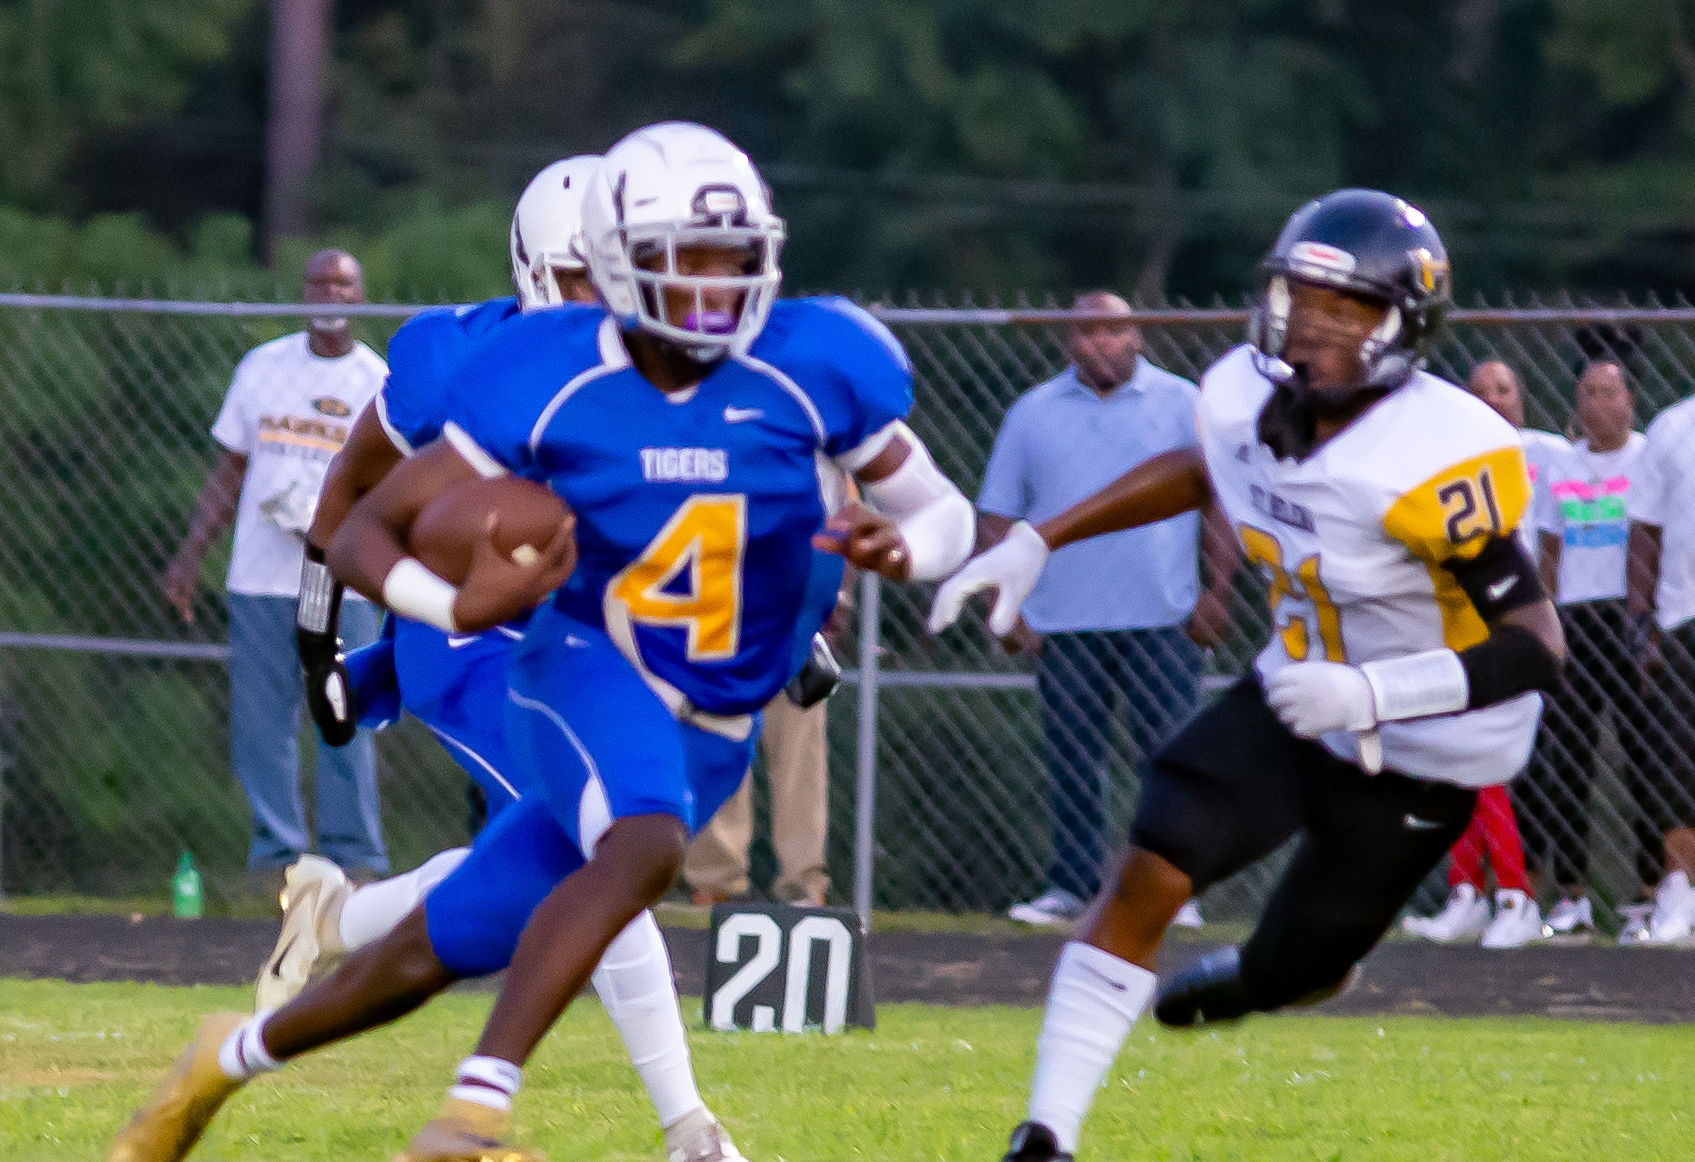 East Feliciana Tigers are 2-0 after win against St. Helena